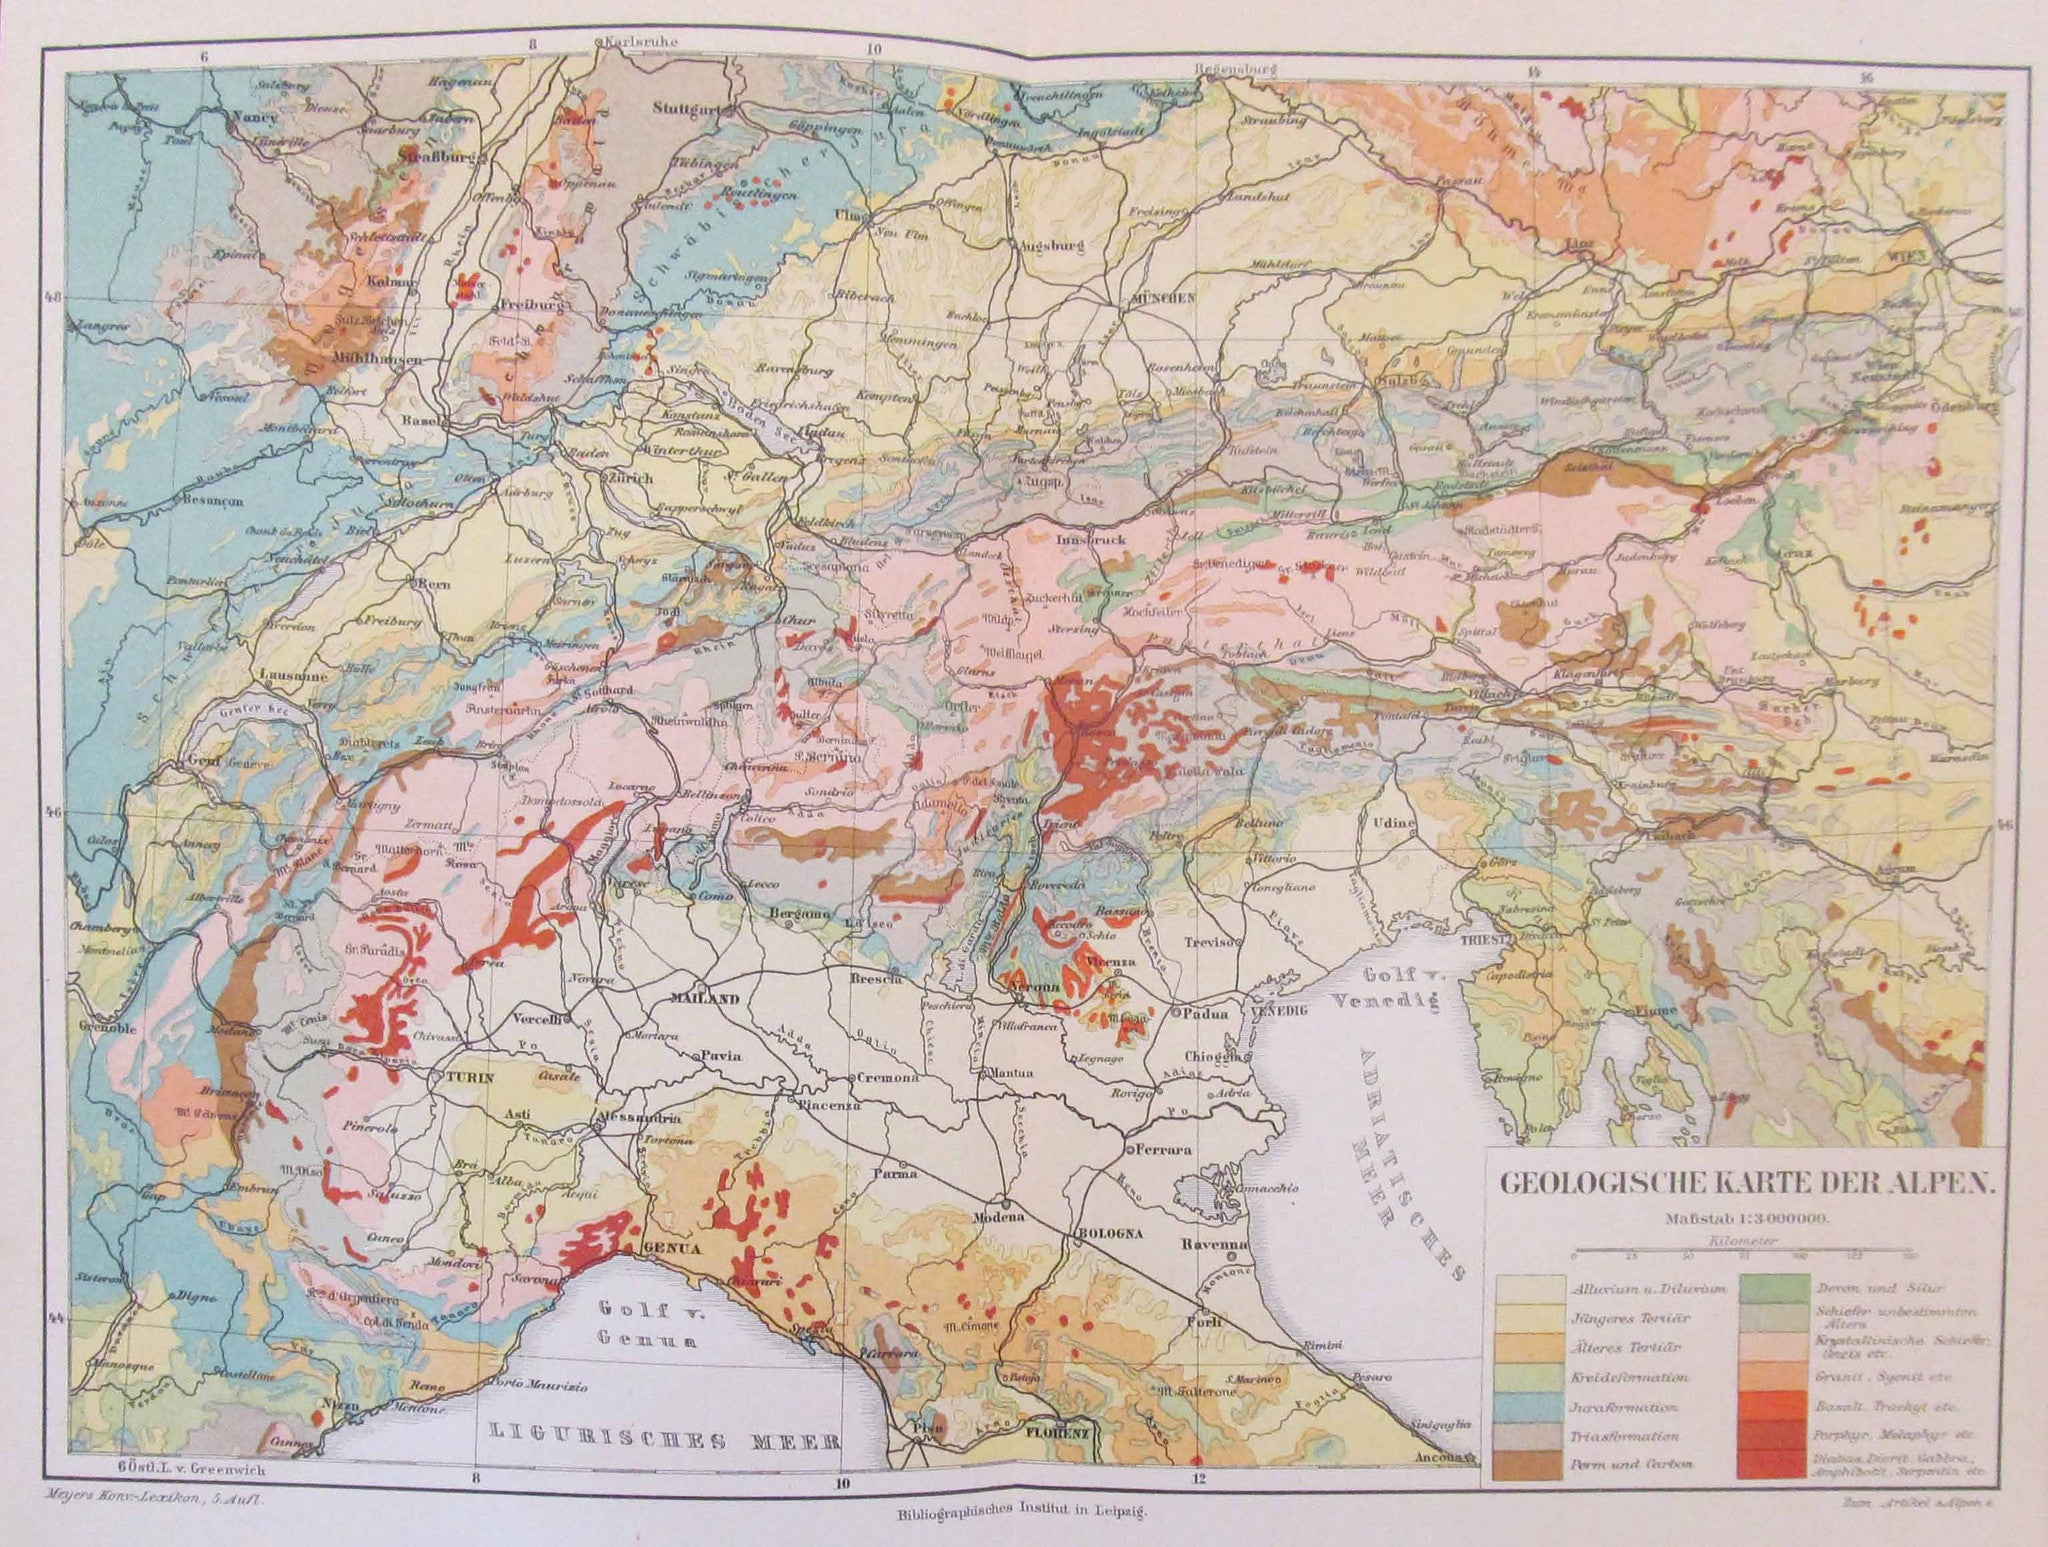 Geologic Map Of Northern Italy Vintage Maps